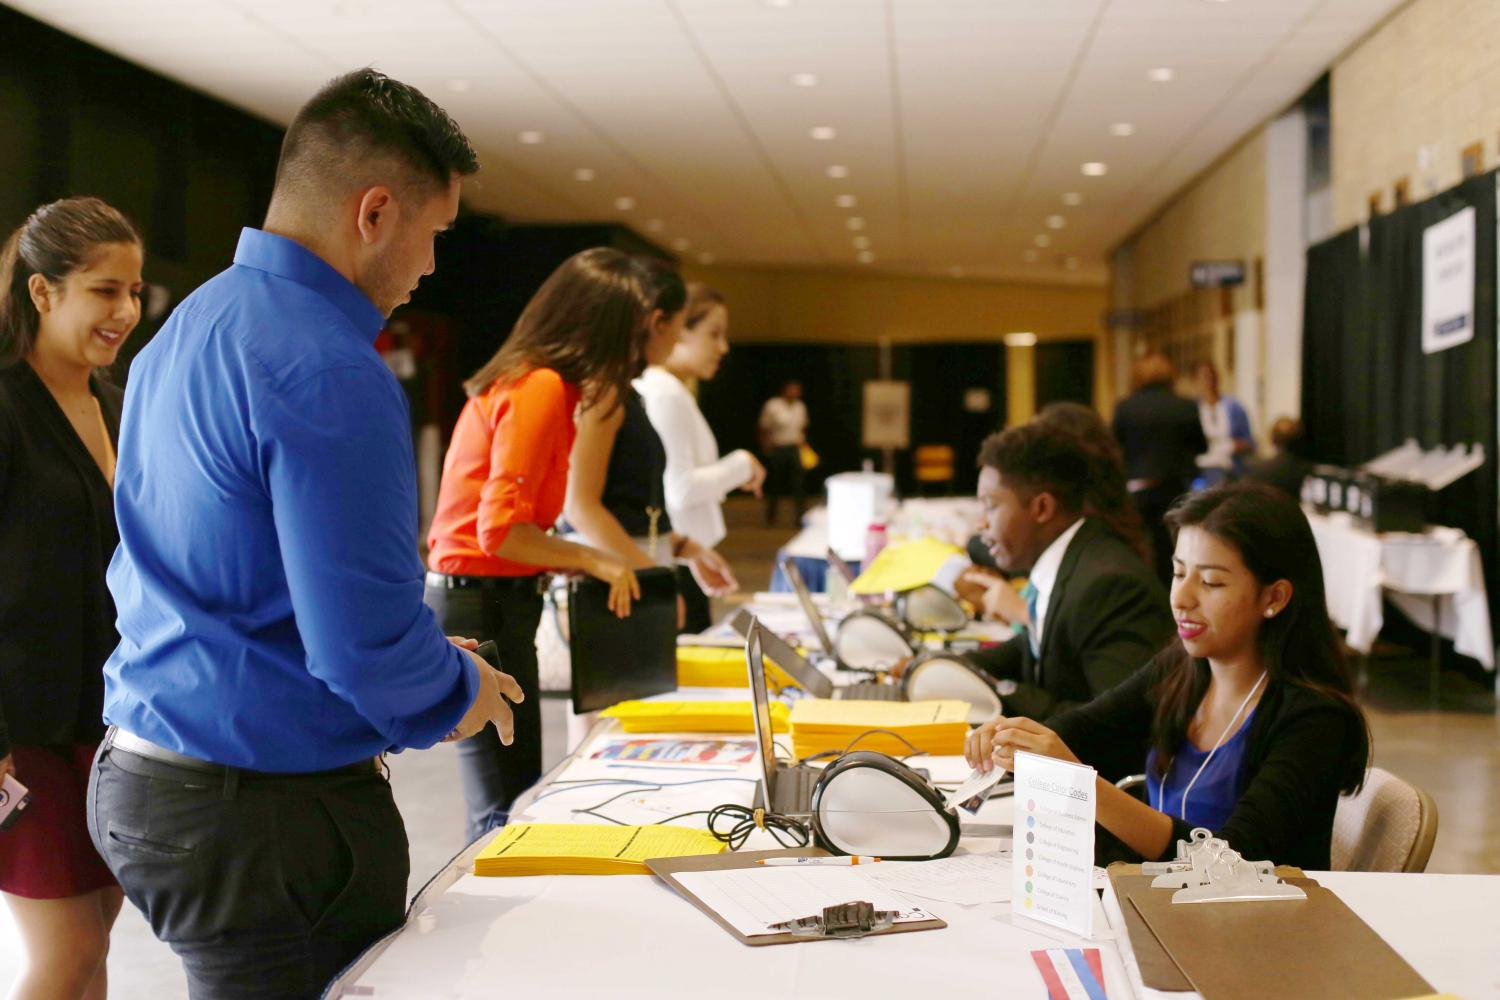 Career+Expo+plans+to+bring+new+opportunities